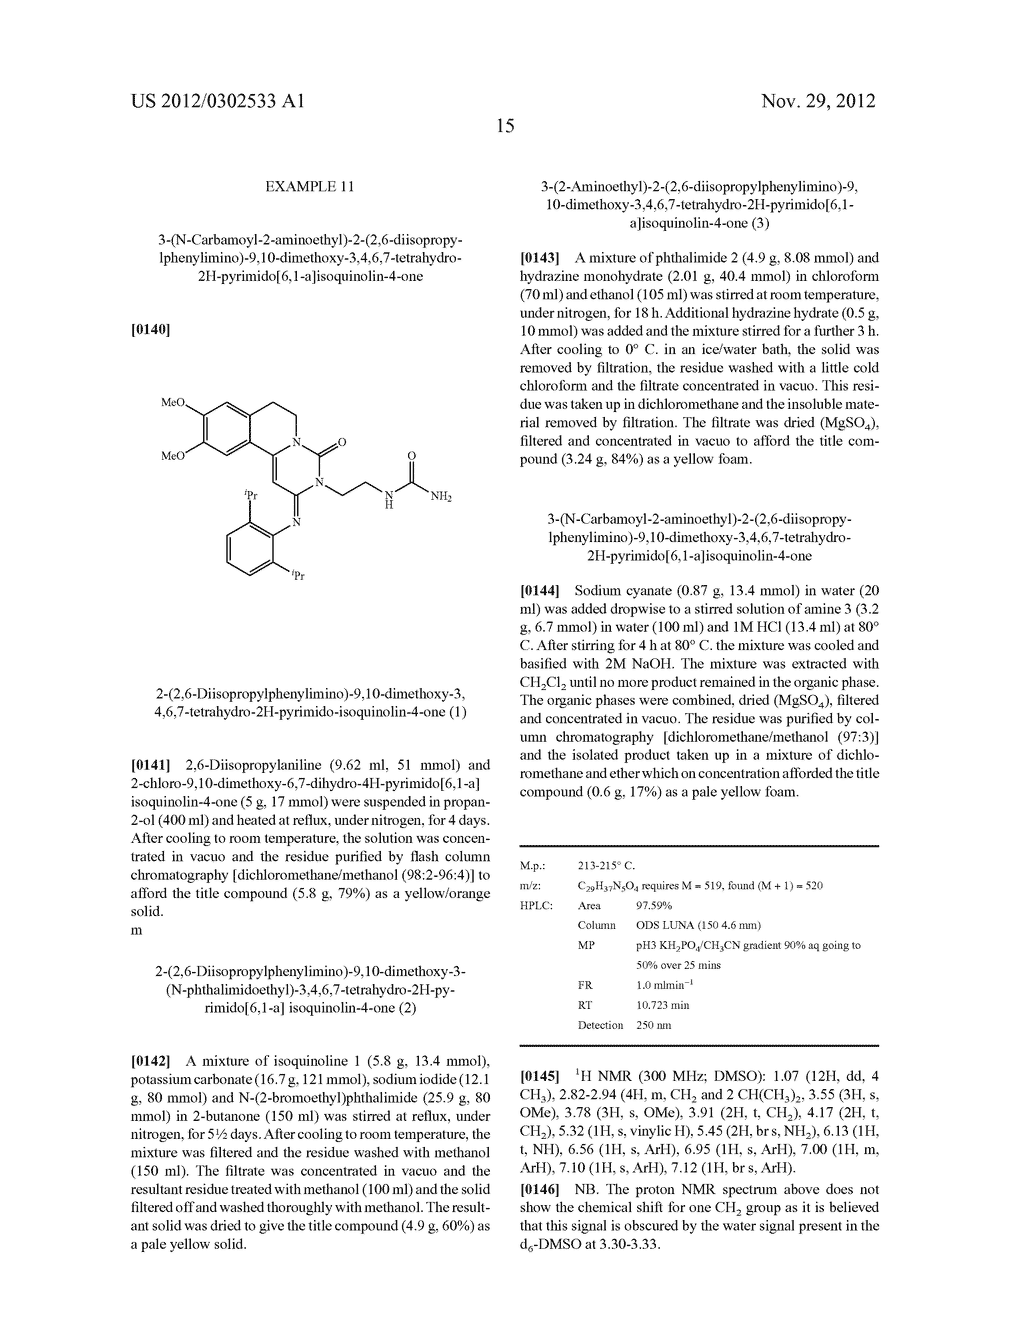 DERIVATIVES OF PYRIMIDO [6,1-A] ISOQUINOLIN-4-ONE - diagram, schematic, and image 21